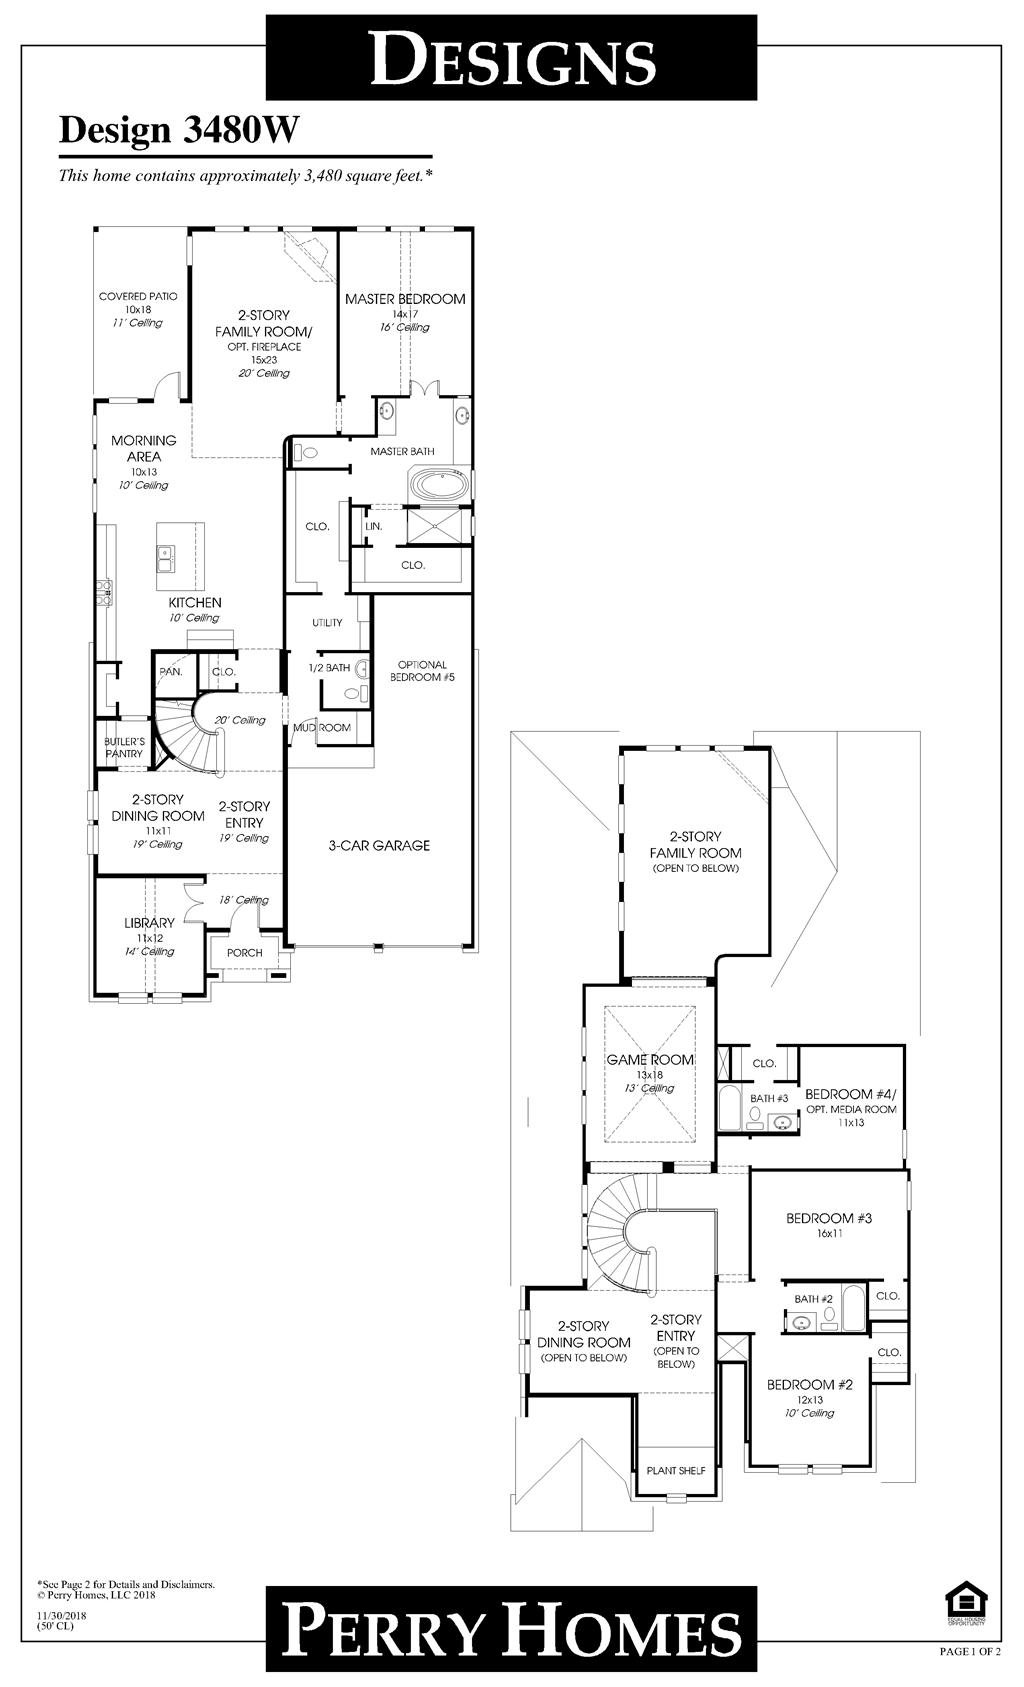 Floor Plan for 3480W